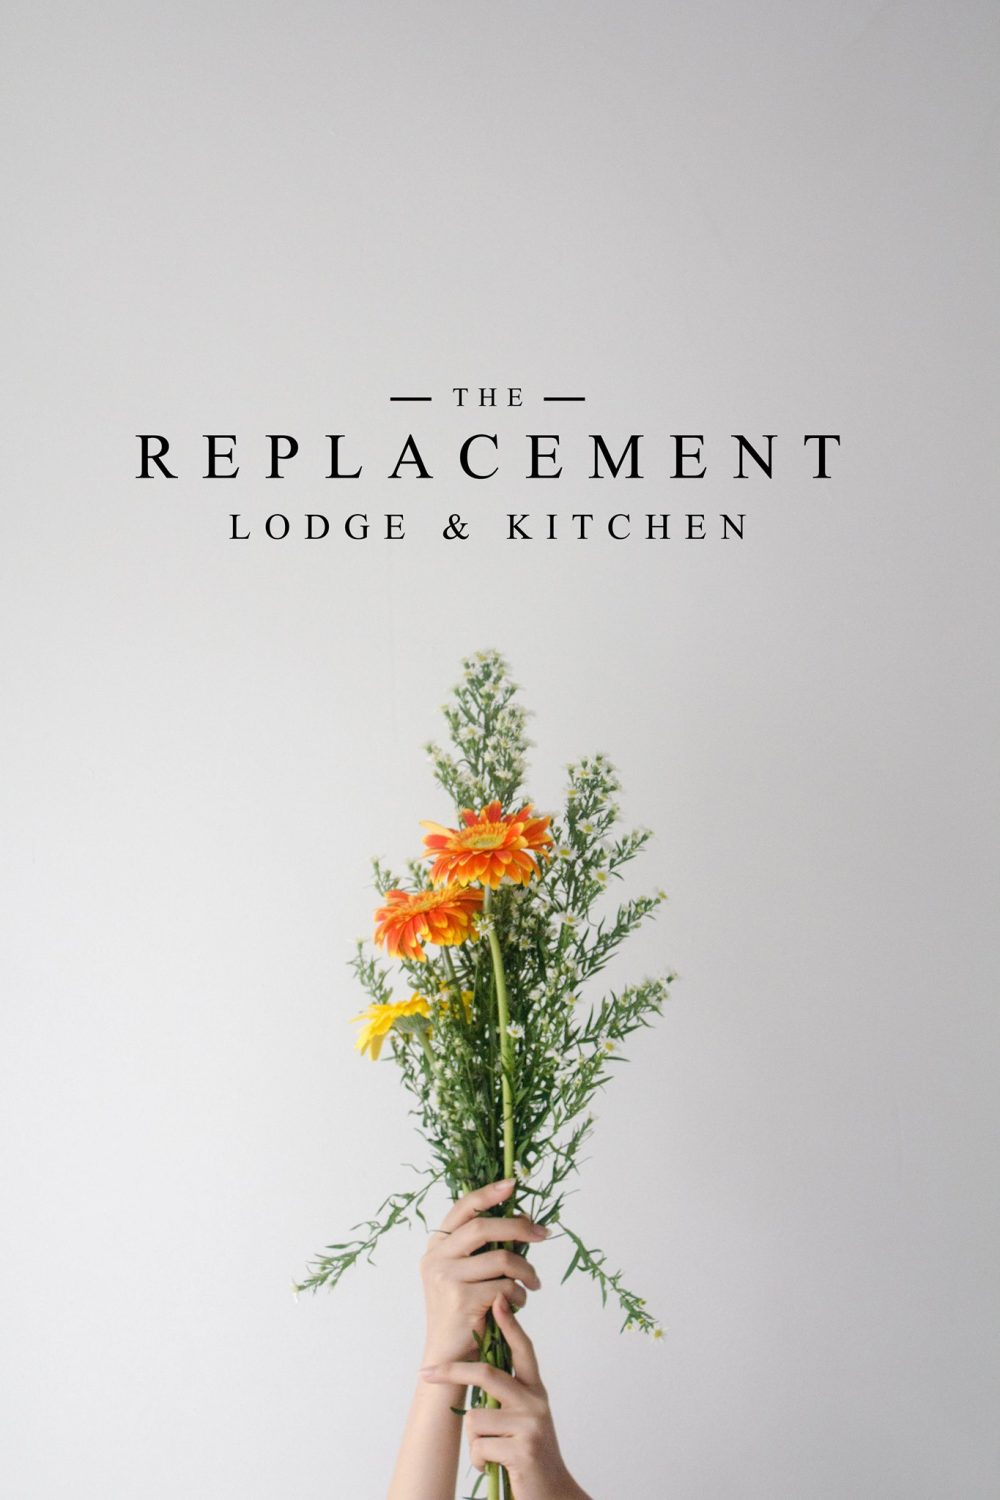 The Replacement - Lodge & Kitchen